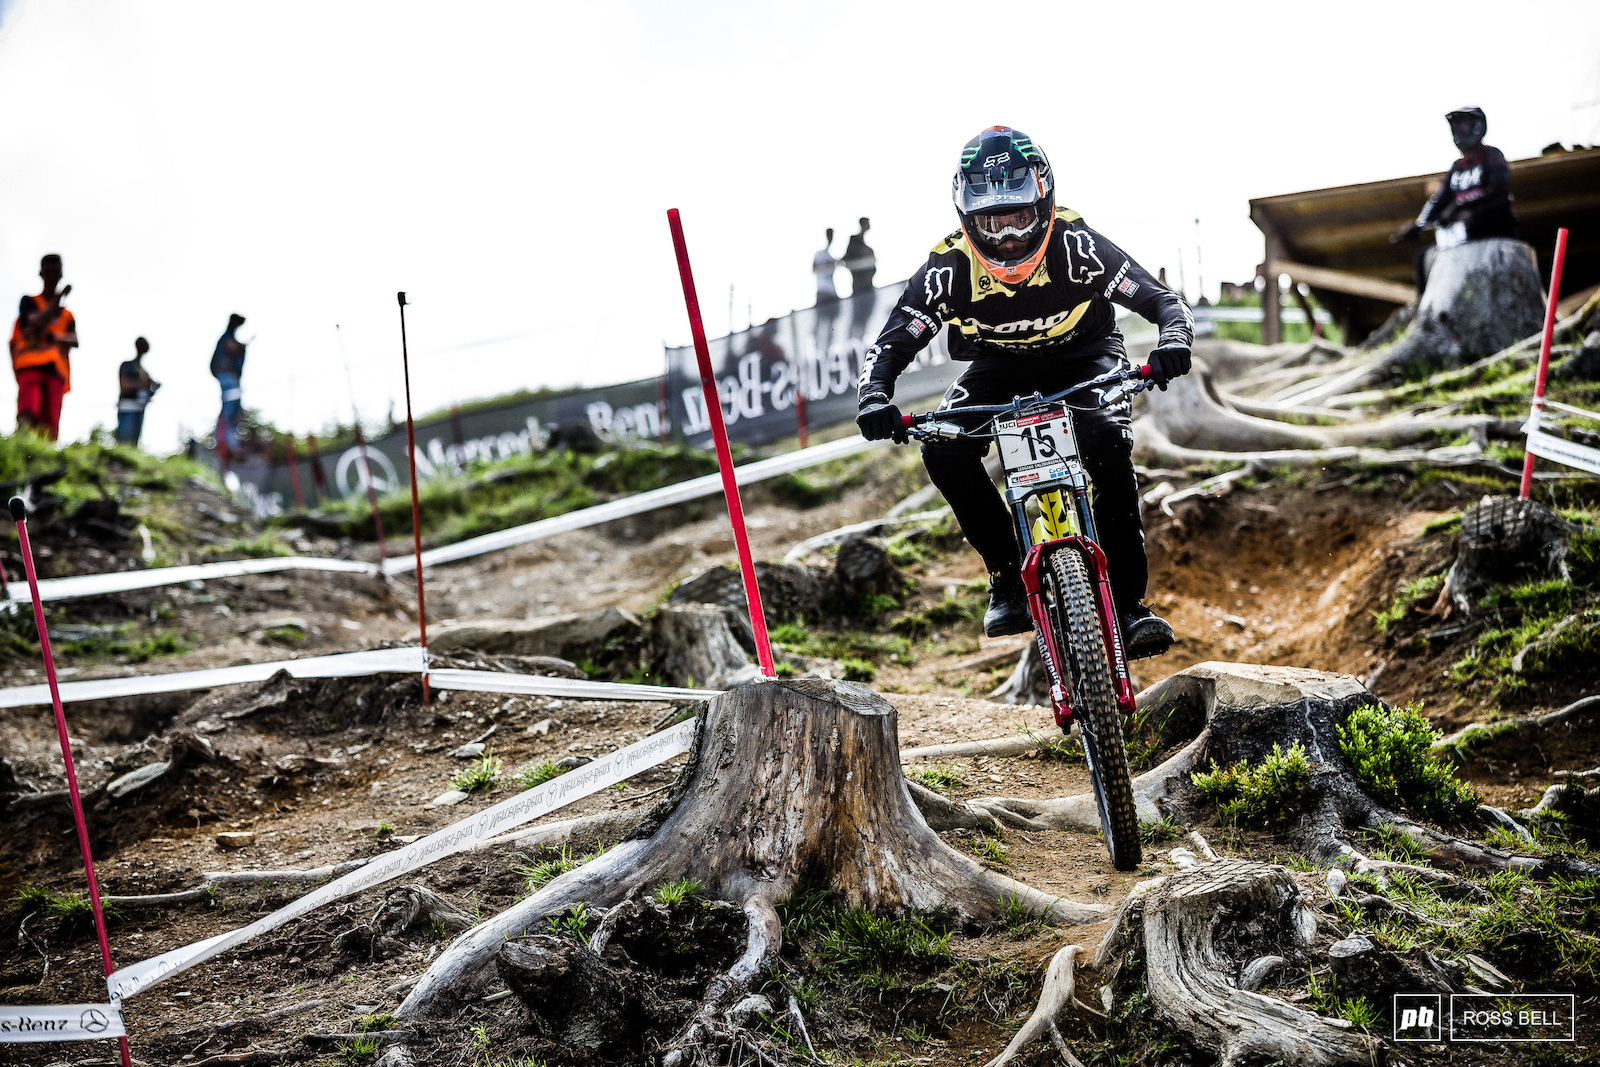 Fearon is a consistent threat to the podium in Leogang he ended up 7th less than a second off.